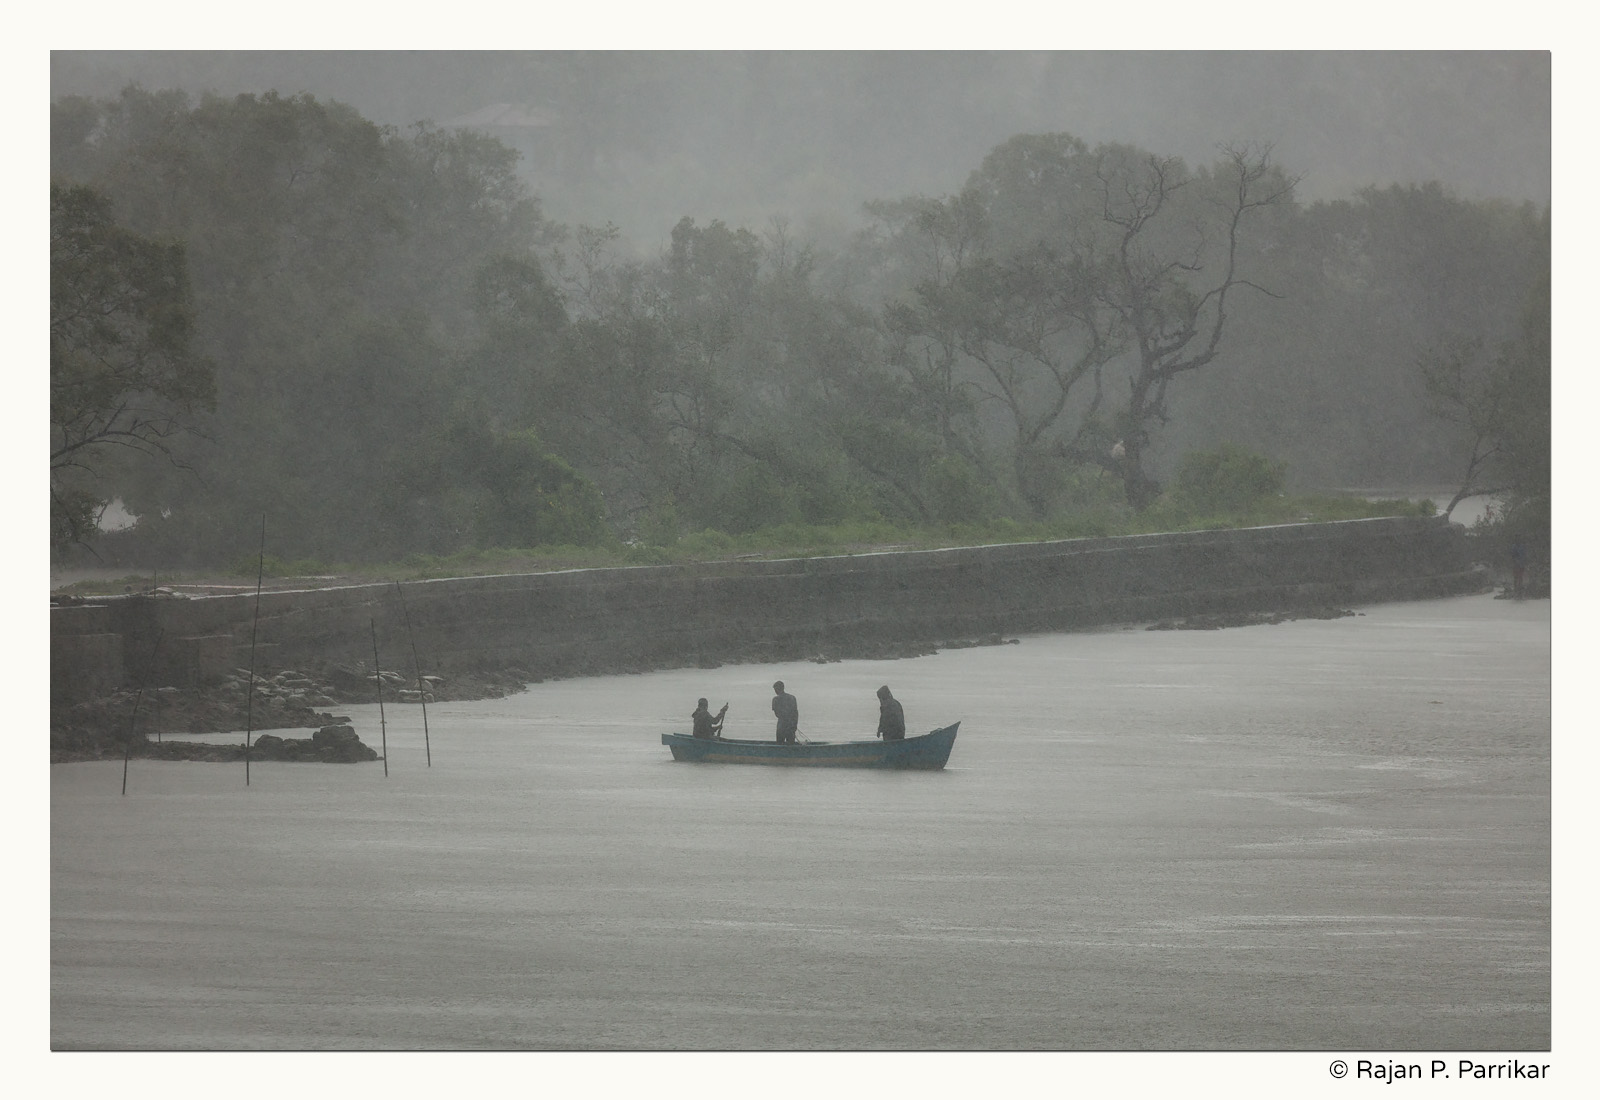 Rainstorm on the Nerul river, Goa